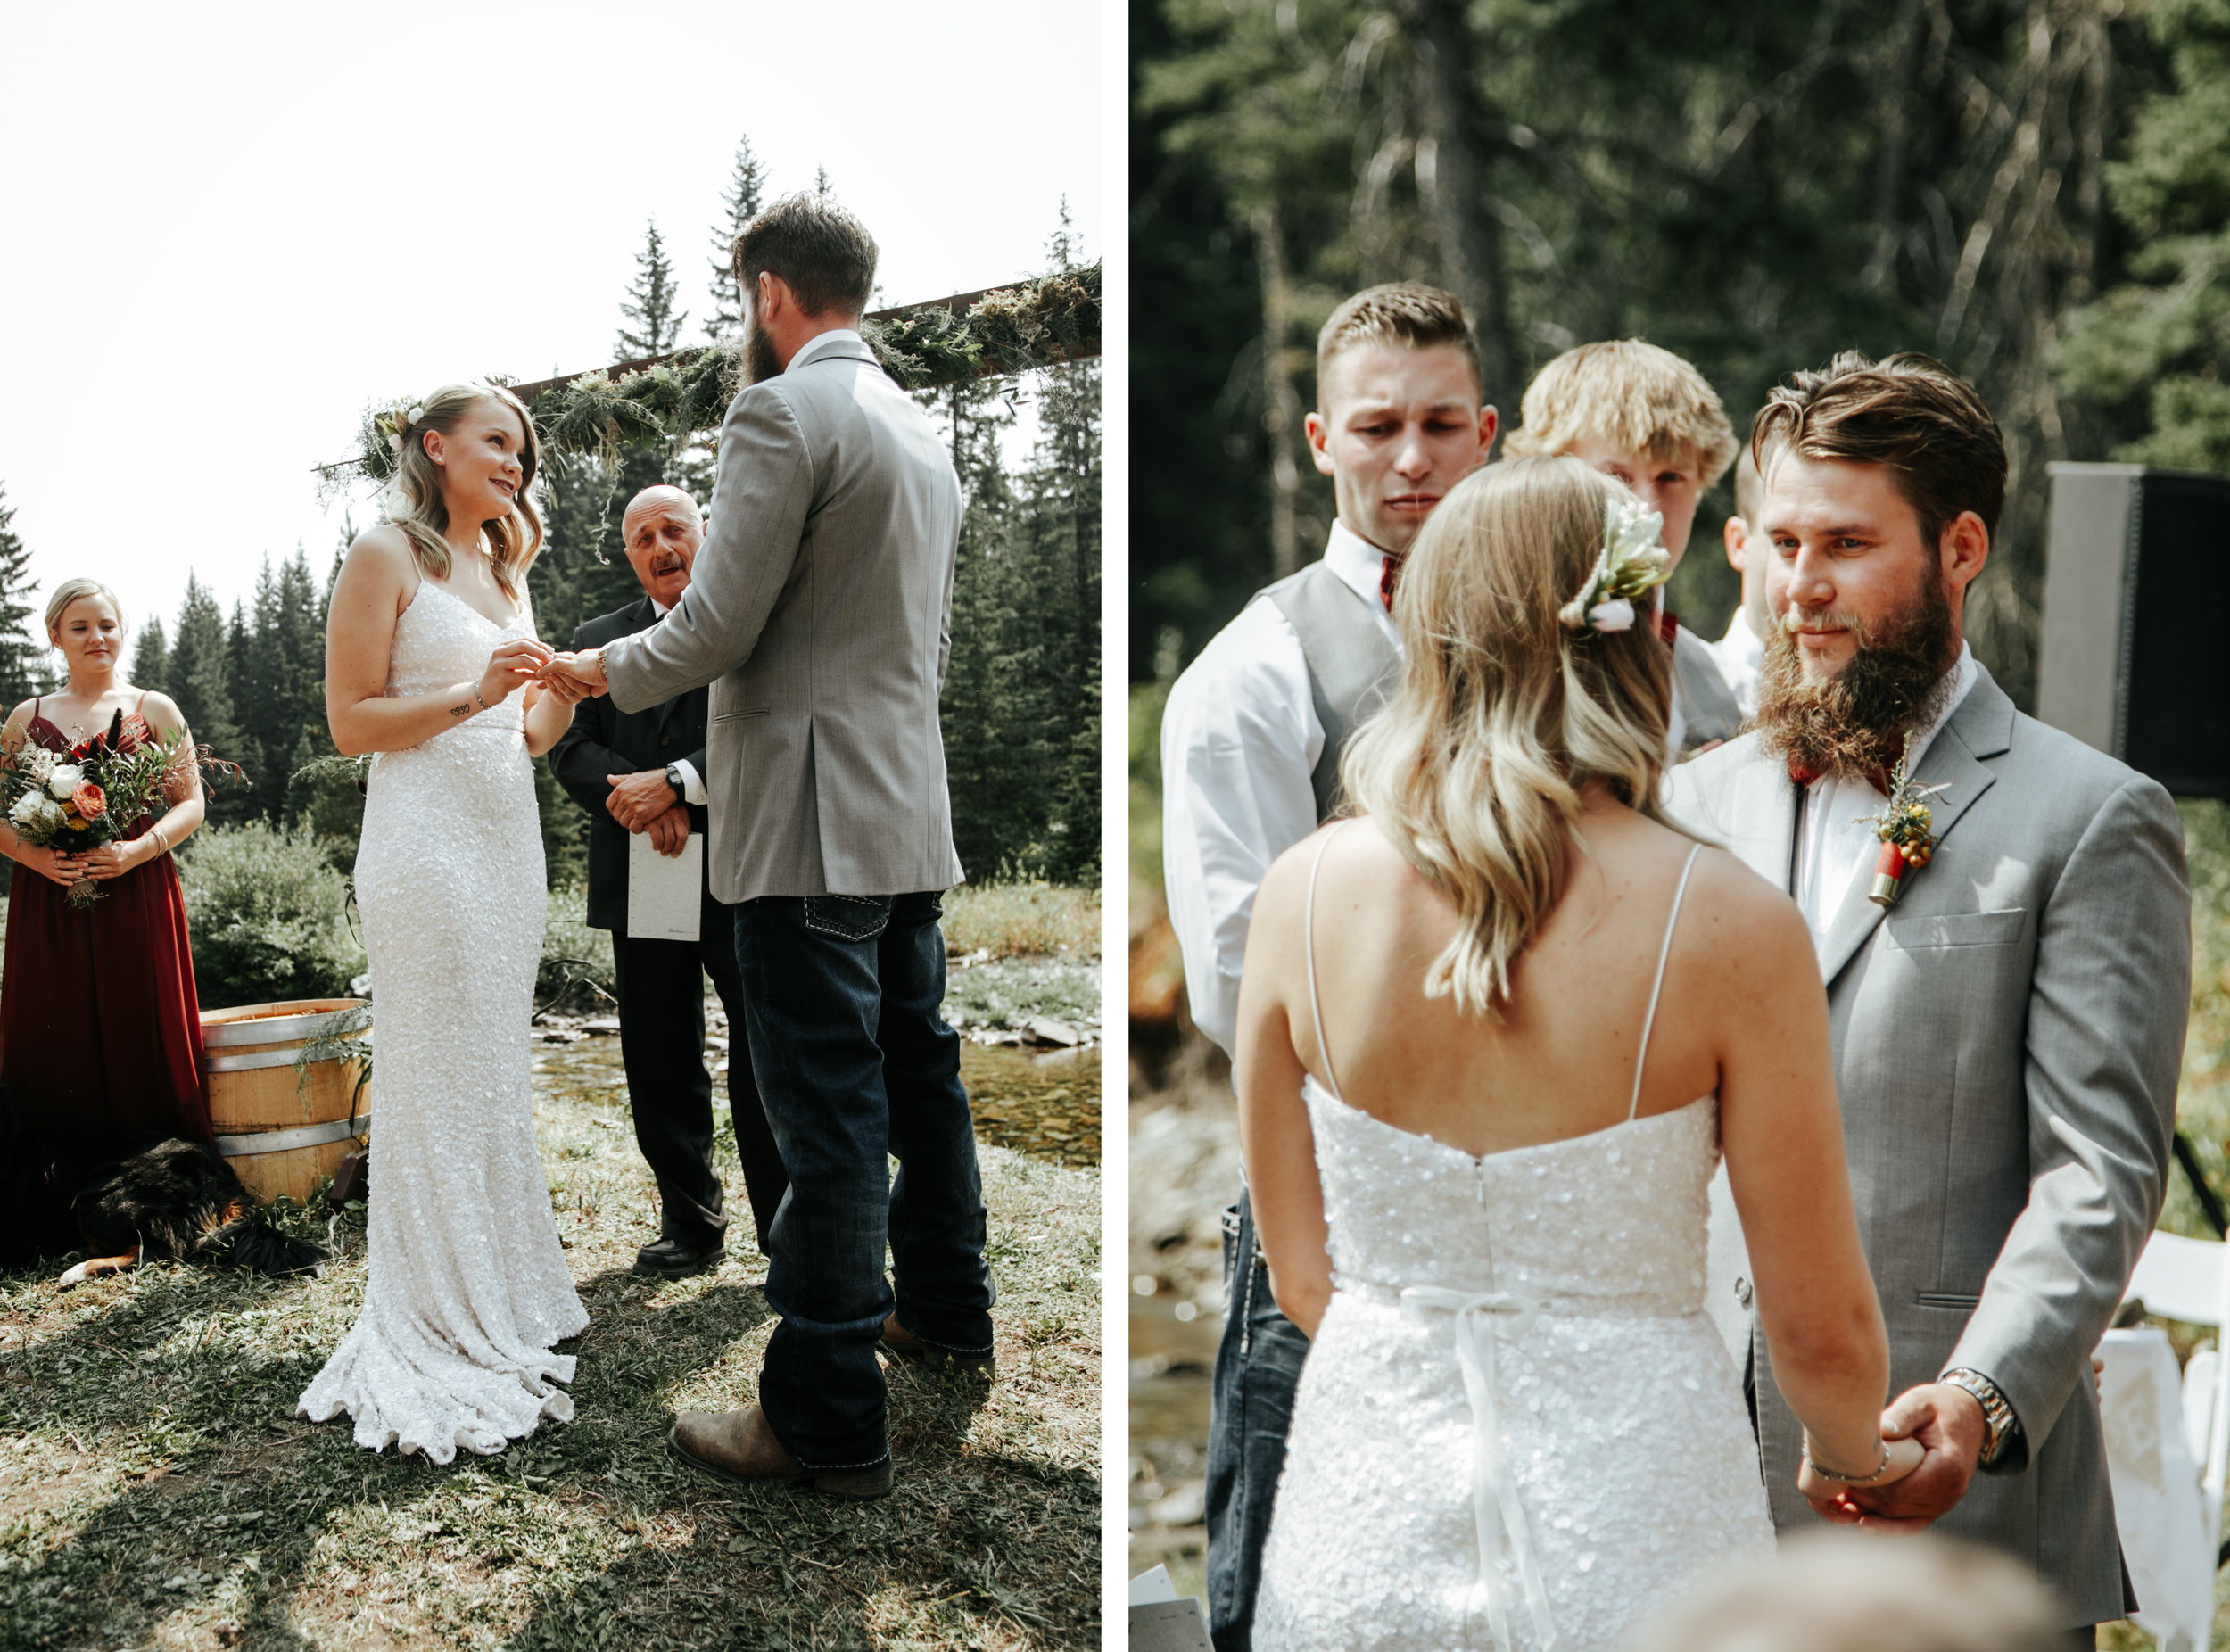 castle-mountain-wedding-photographer-love-and-be-loved-photography-lethbridge-pincher-creek-crowsnest-pass-yannick-rylee-photo-image-picture-75.jpg